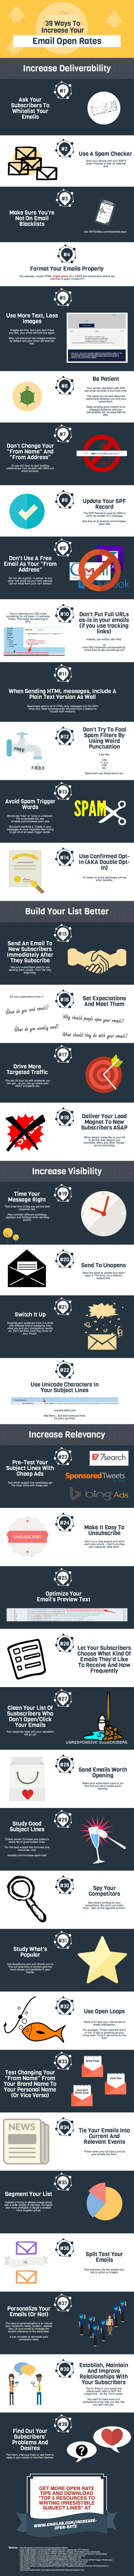 39 methods to increase your email open rates